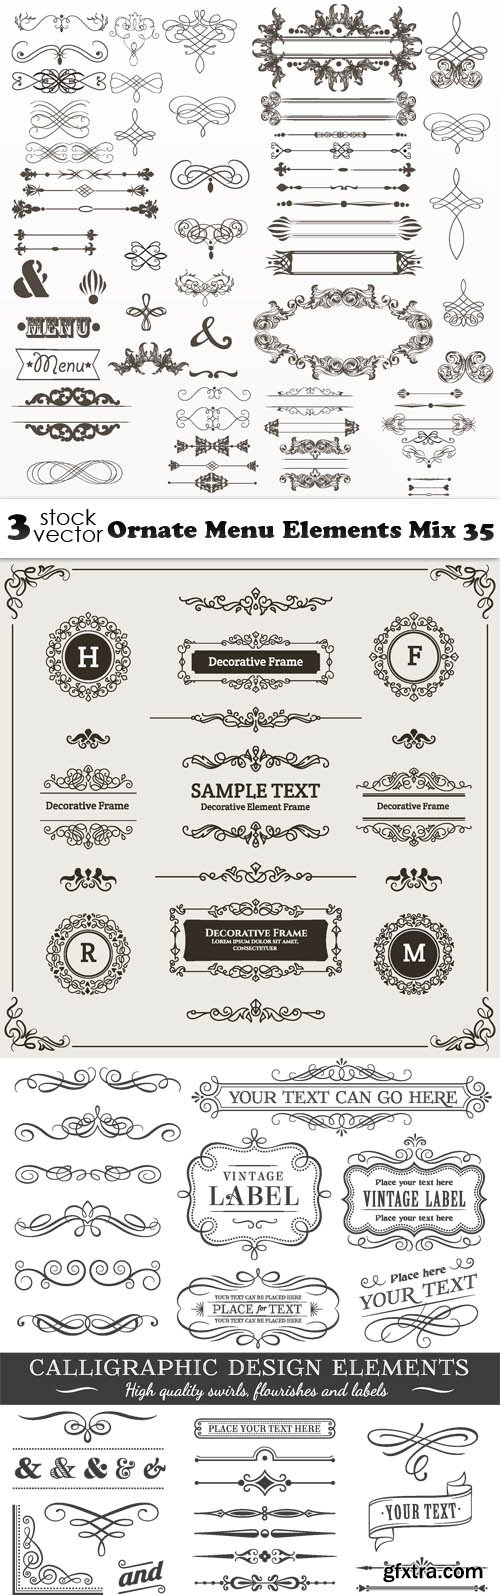 Vectors - Ornate Menu Elements Mix 35